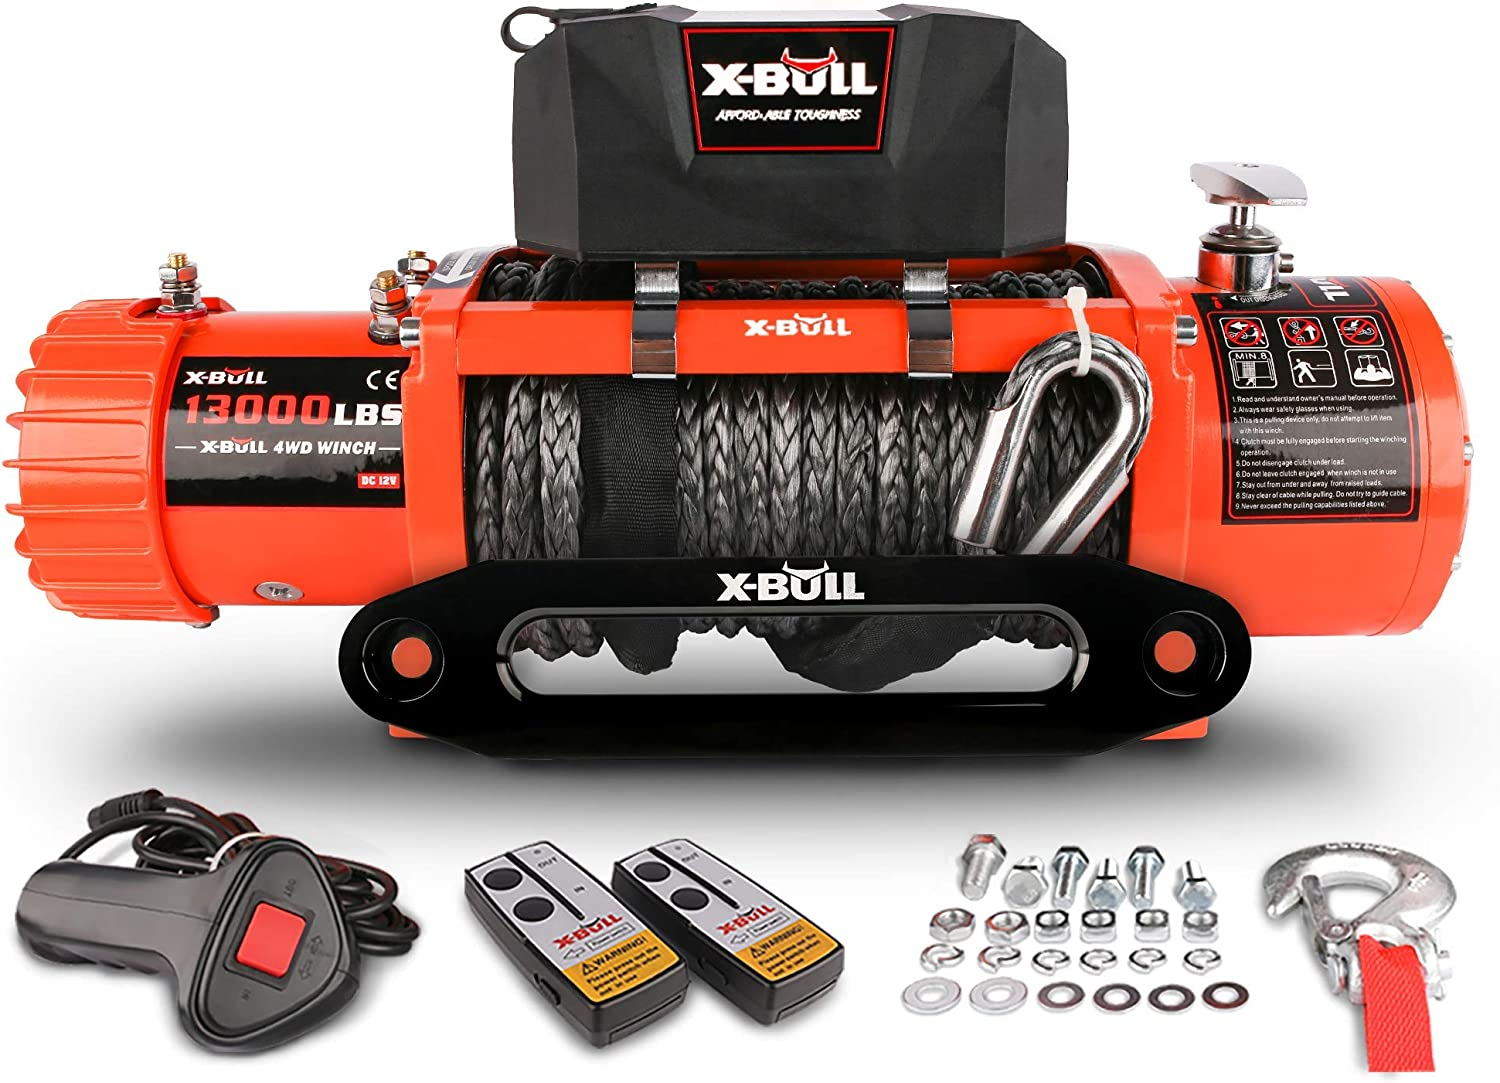 X-BULL 12V Synthetic Rope Winch